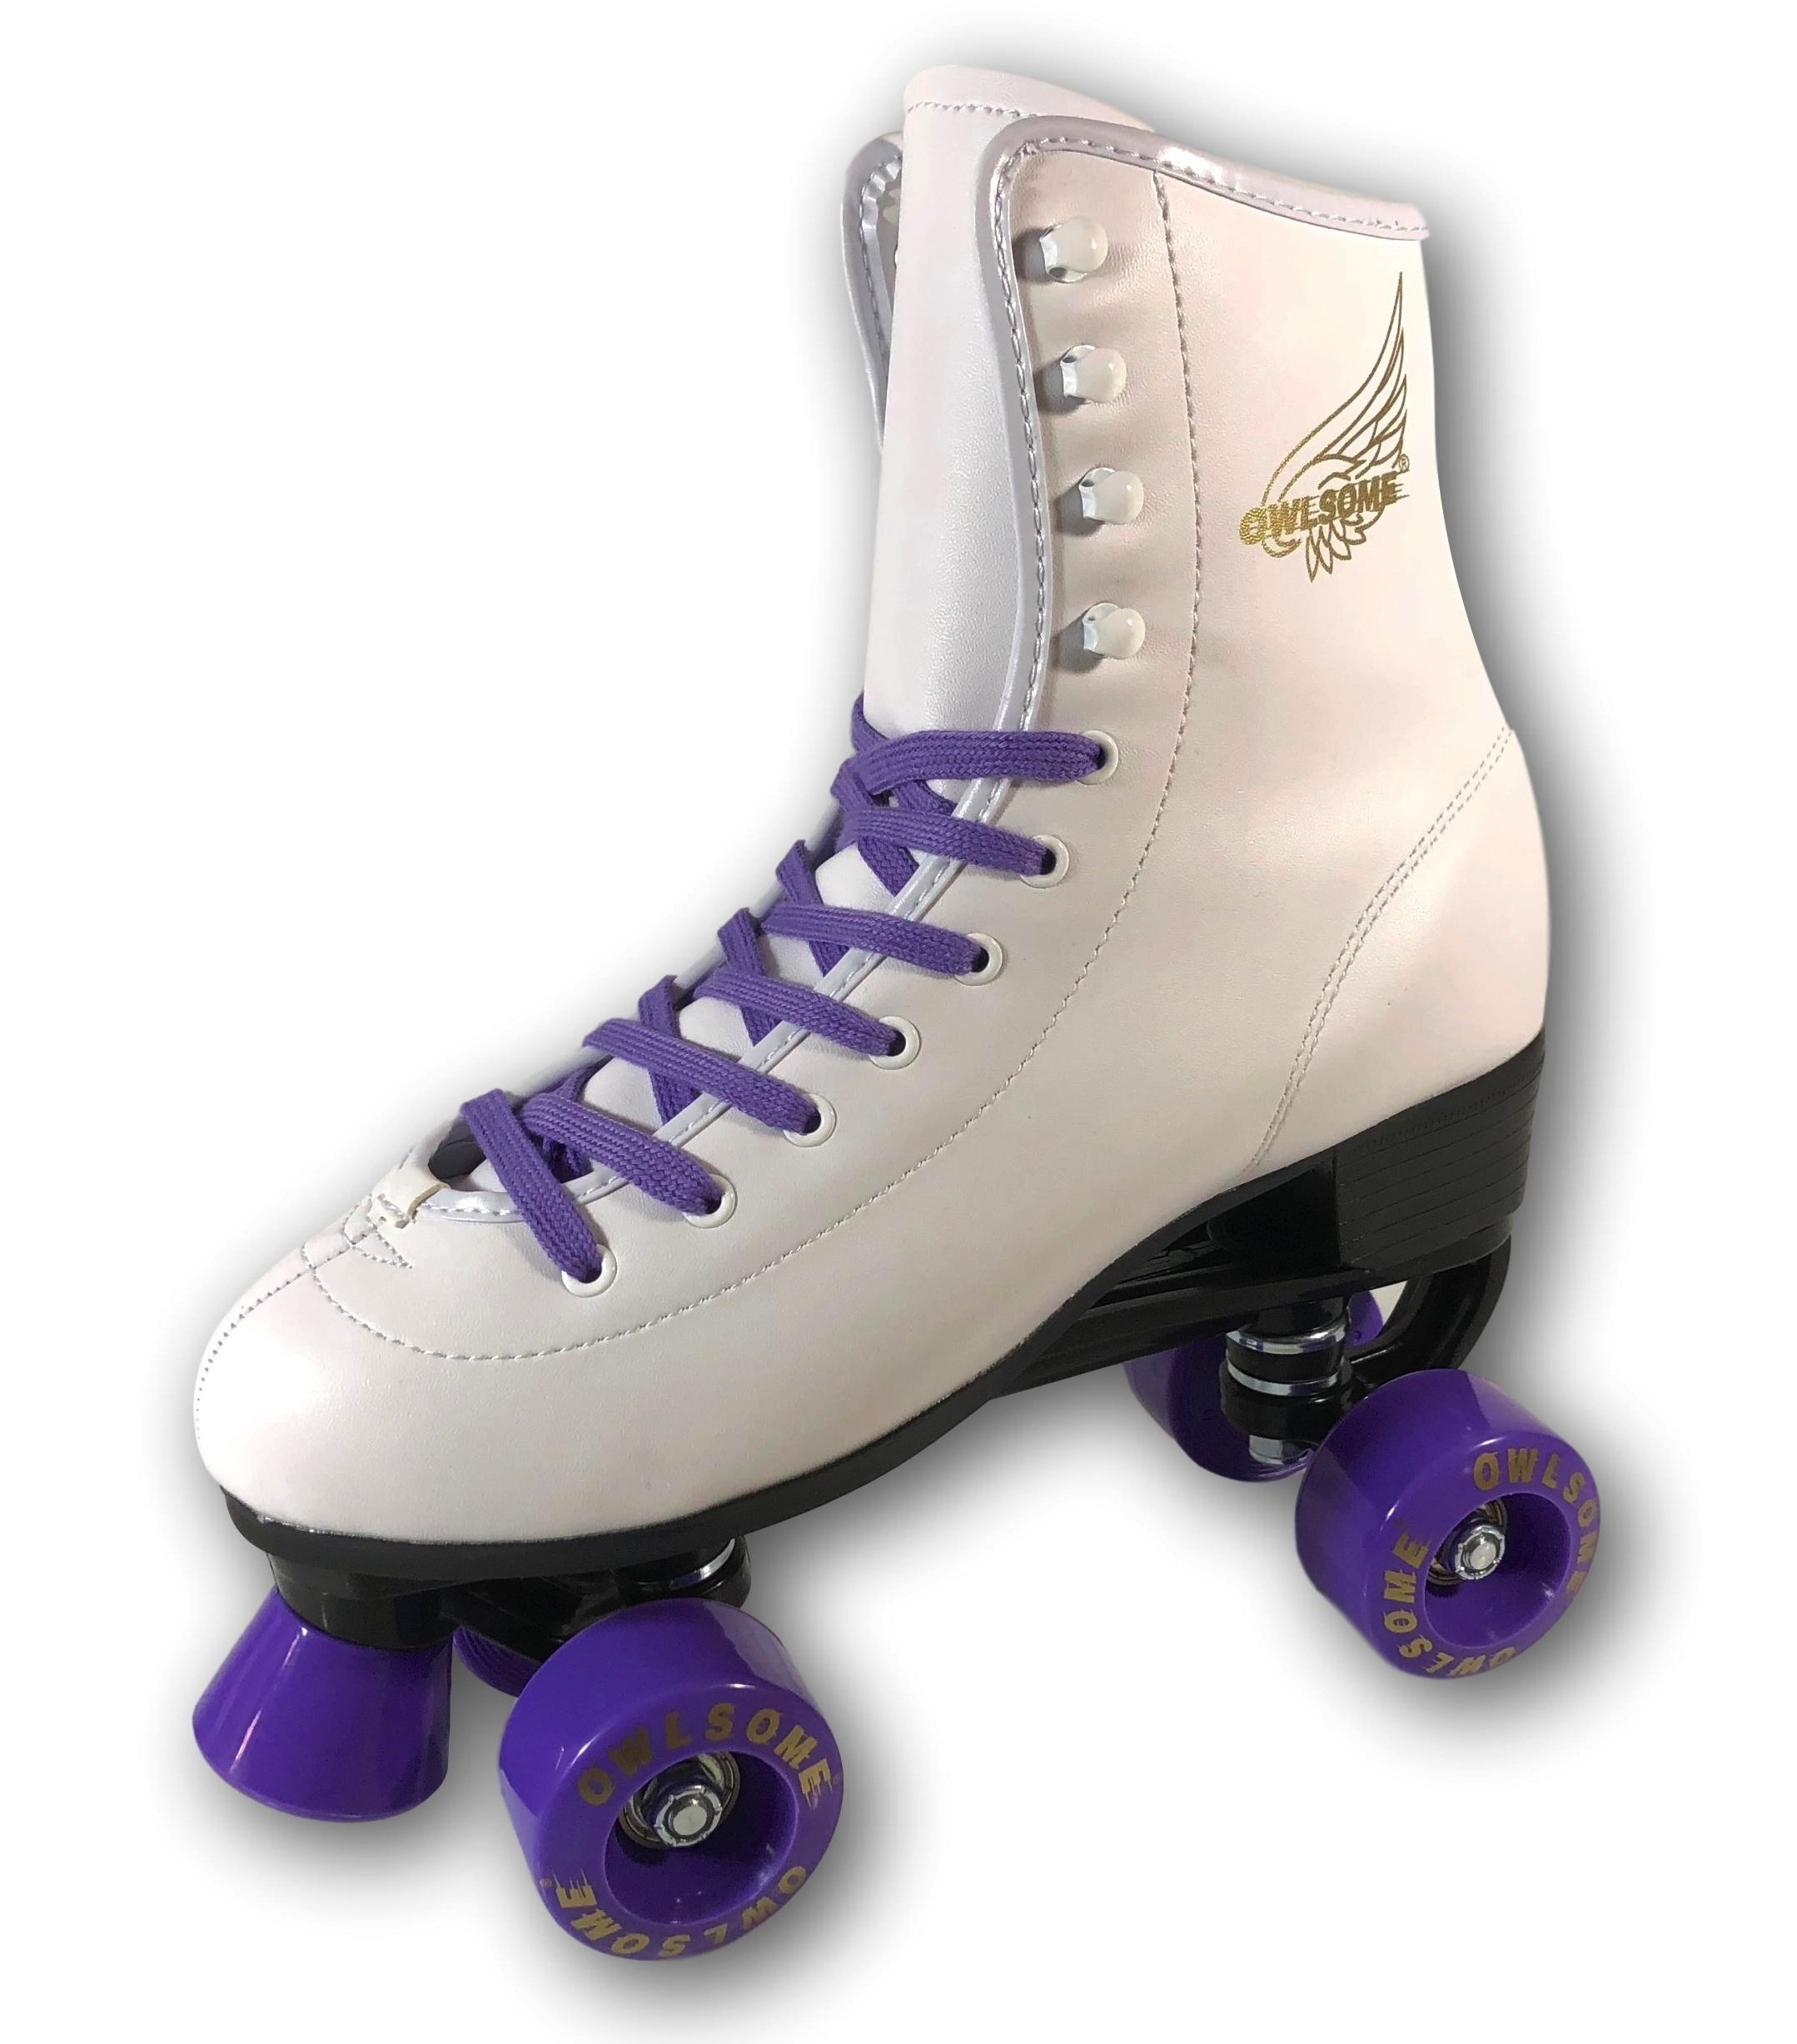 Owlsome Classic High Top Boot Style Soft Faux Leather Roller Skate For Adult & Youth (White/Purple, 4 (9.12''/23.2cm))